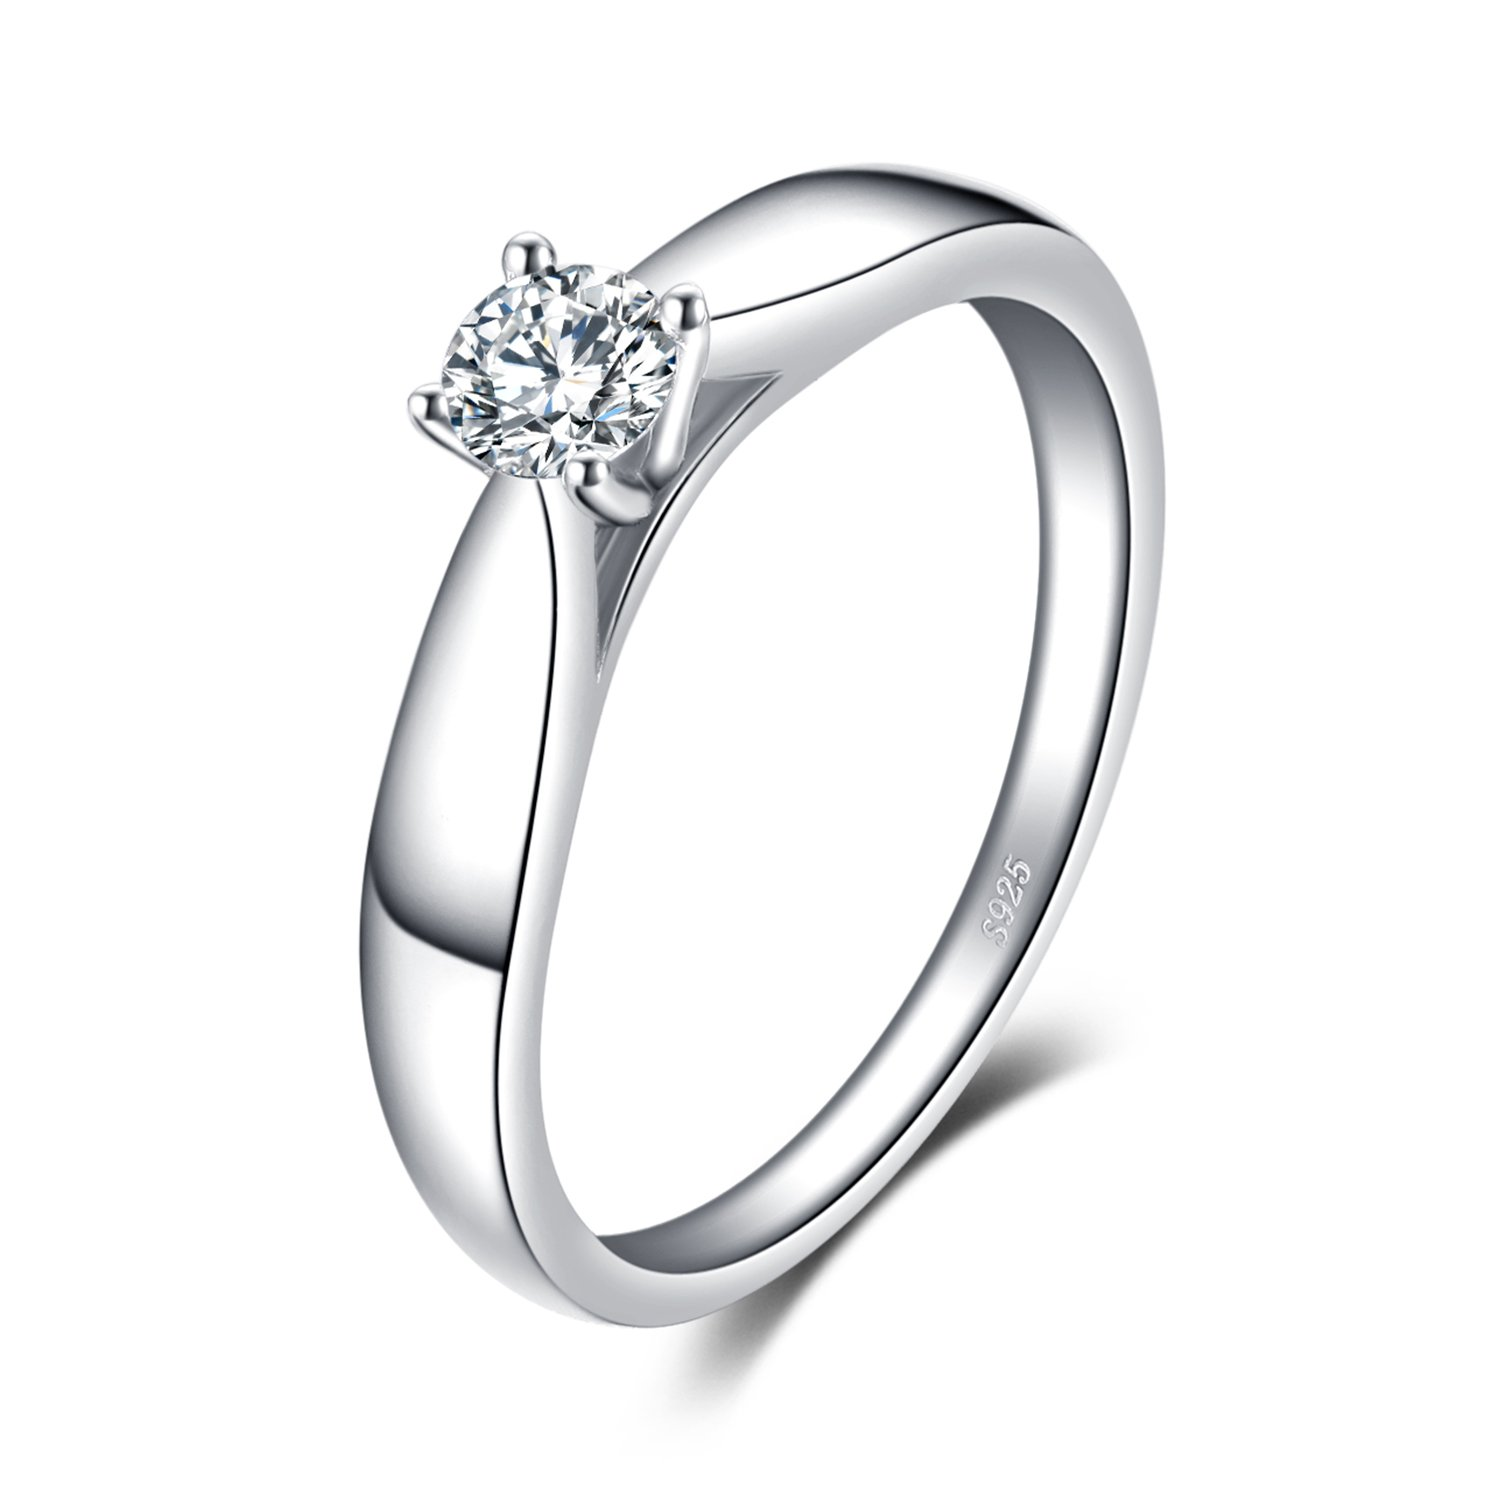 JewelryPalace 0.2ct Cubic Zirconia Anniversary Solitaire Engagement Ring 925 Sterling Silver CA-BR477199